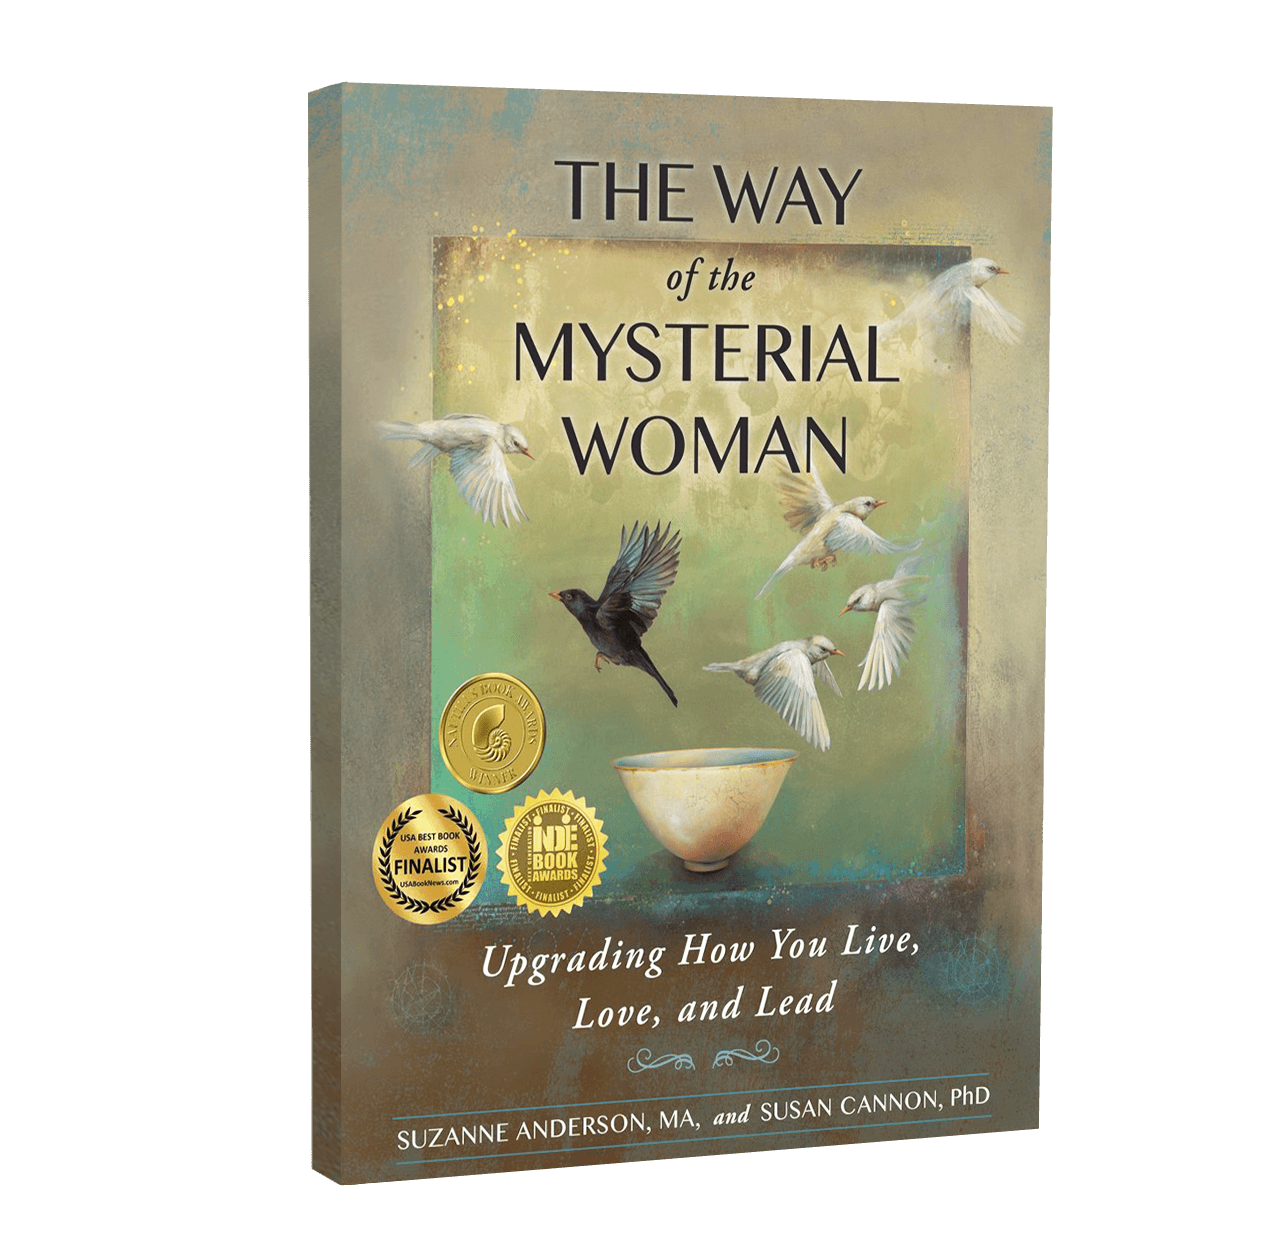 We are thrilled to announce our 3 awards: Nautilus Book Awards Women's category Gold 2016, Best Book Awards Women's Issues category Finalist 2016, and a Next Generation Indie Book Awards Women's Issues category Finalist 2017! -